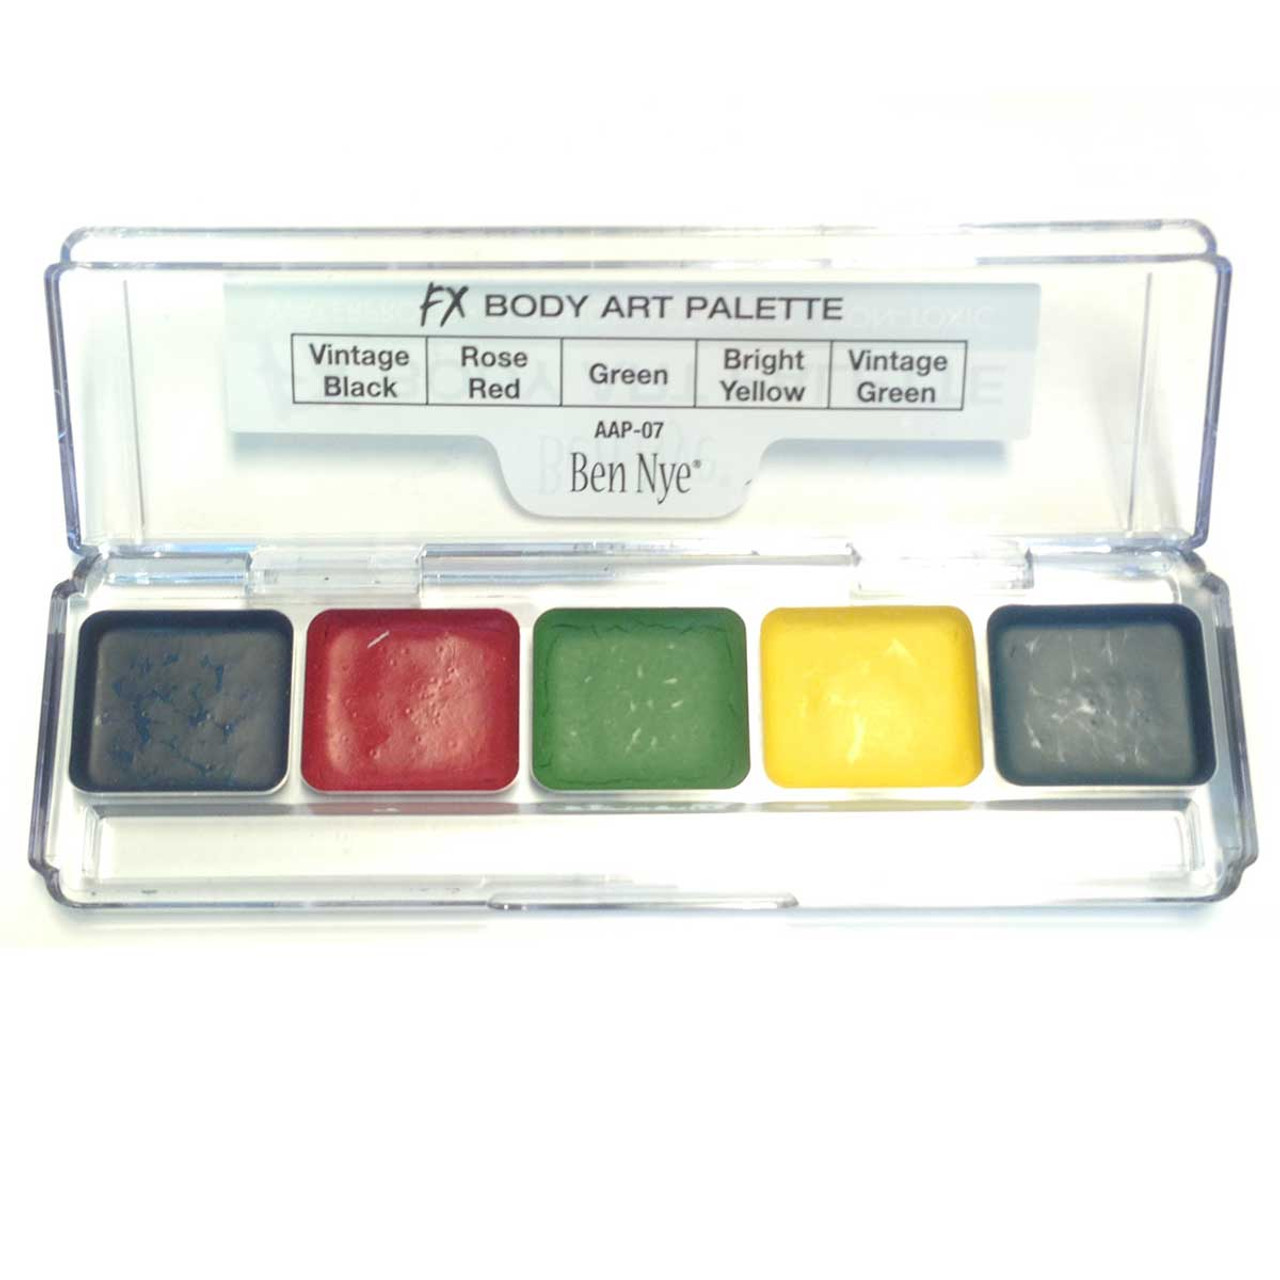 Ben Nye Body Art Palette Alcohol Activated